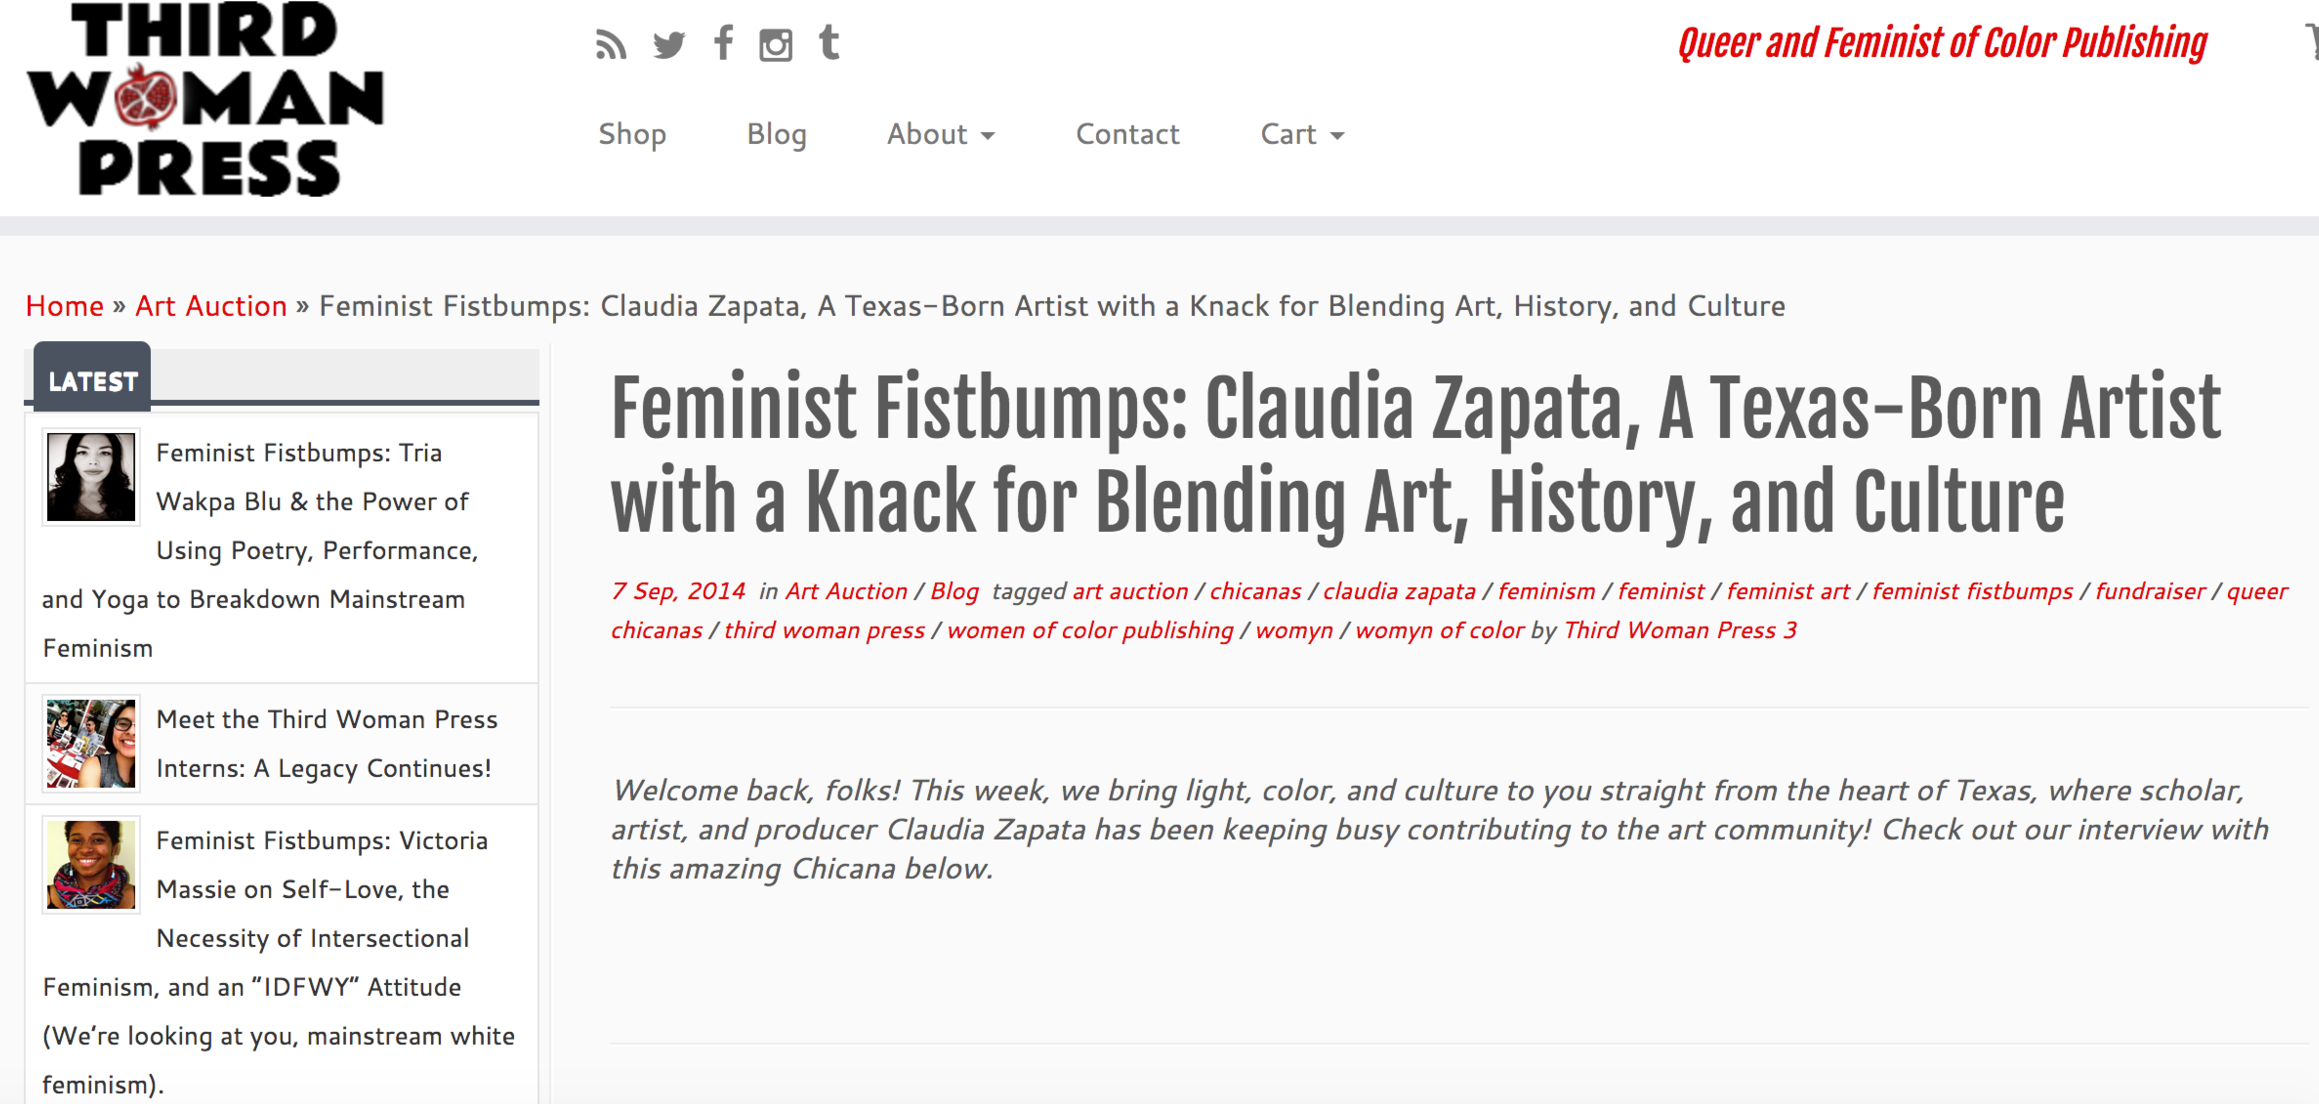 """Third Woman Press Collective, """"Feminist Fistbumps: Claudia Zapata, A Texas-Born Artist with a Knack for Blending Art, History, and Culture,""""  Third Woman Press.com , September 8, 2014. http://www.thirdwomanpress.com/feminist-fistbumps-claudia-zapata-a-texas-born-artist-with-a-knack-for-blending-art-history-and-culture/"""